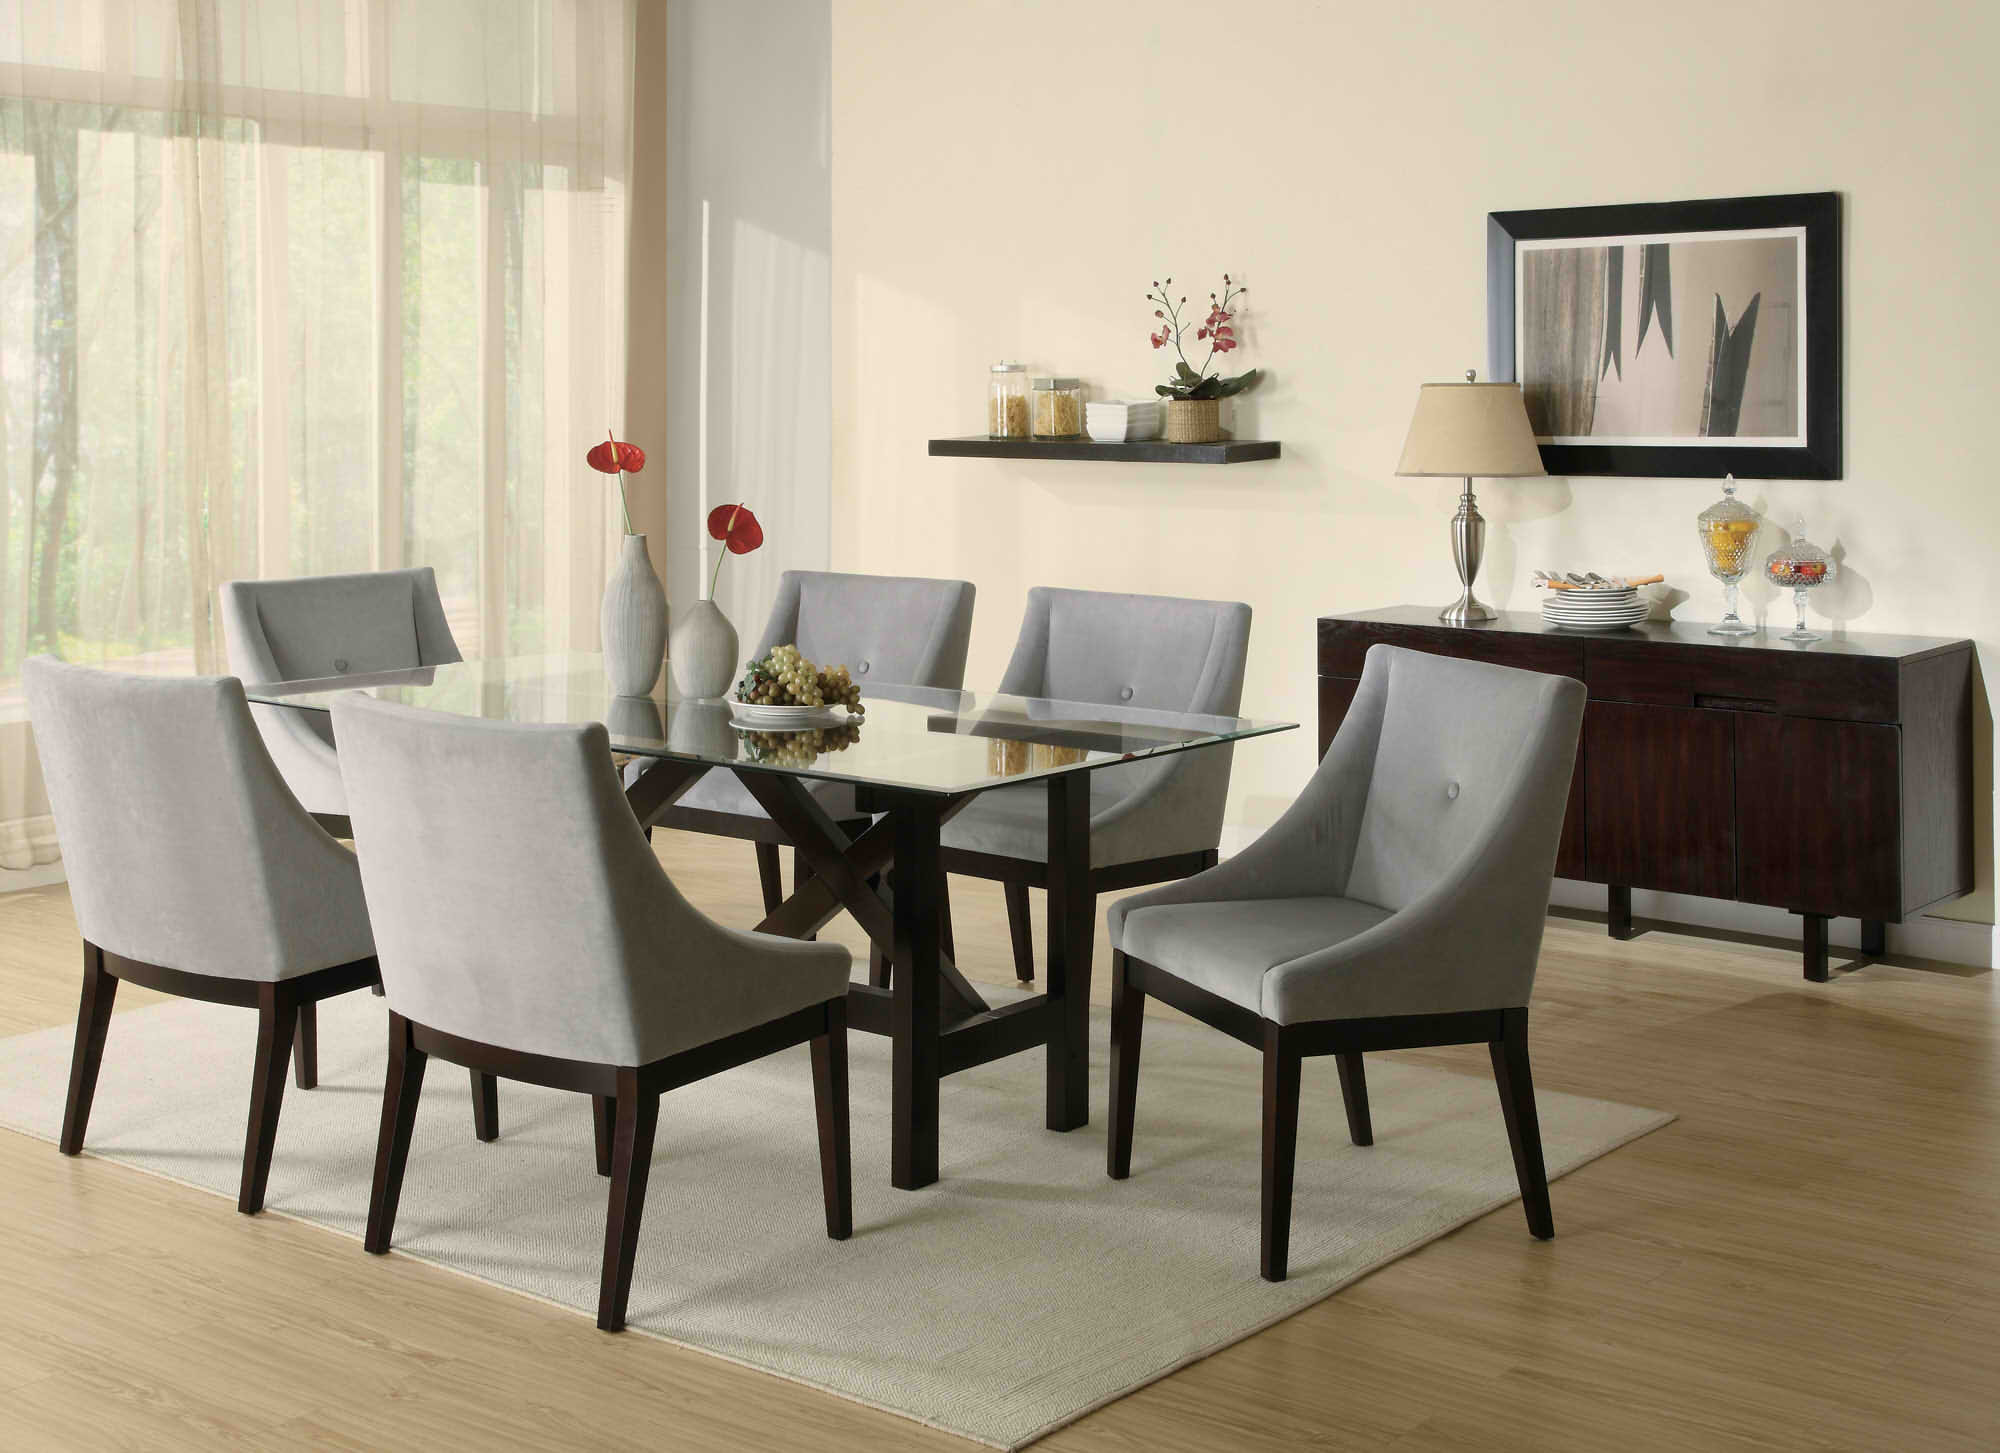 Best ideas about Modern Dining Room Chairs . Save or Pin Buying Modern Dining Sets Tips and Advices Traba Homes Now.